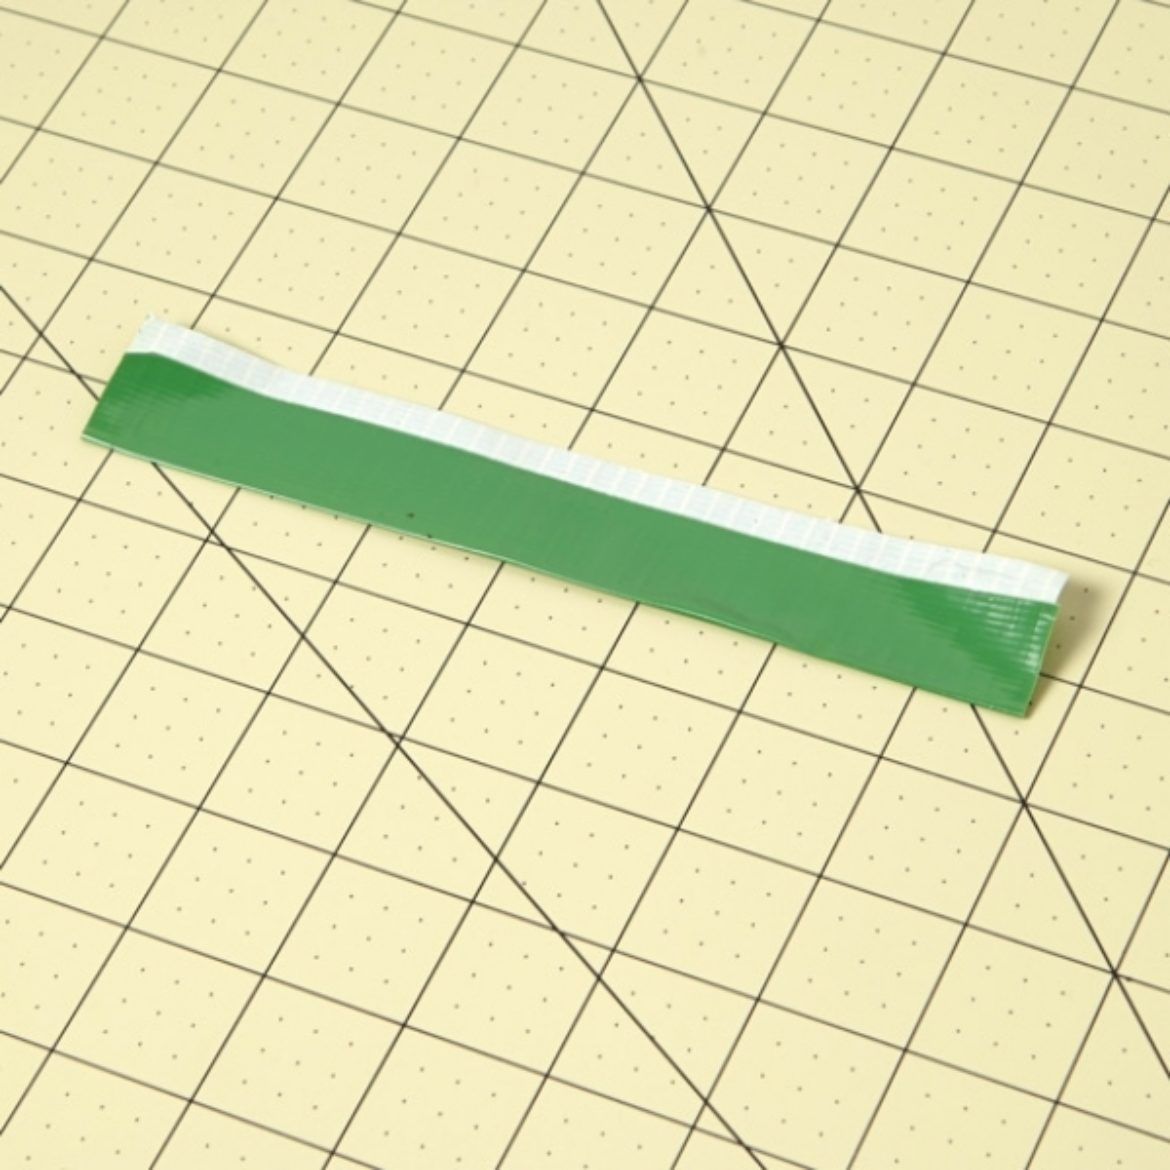 Strip of Duck Tape folded length wise so the there is a thin strip of sticky side exposed on one side